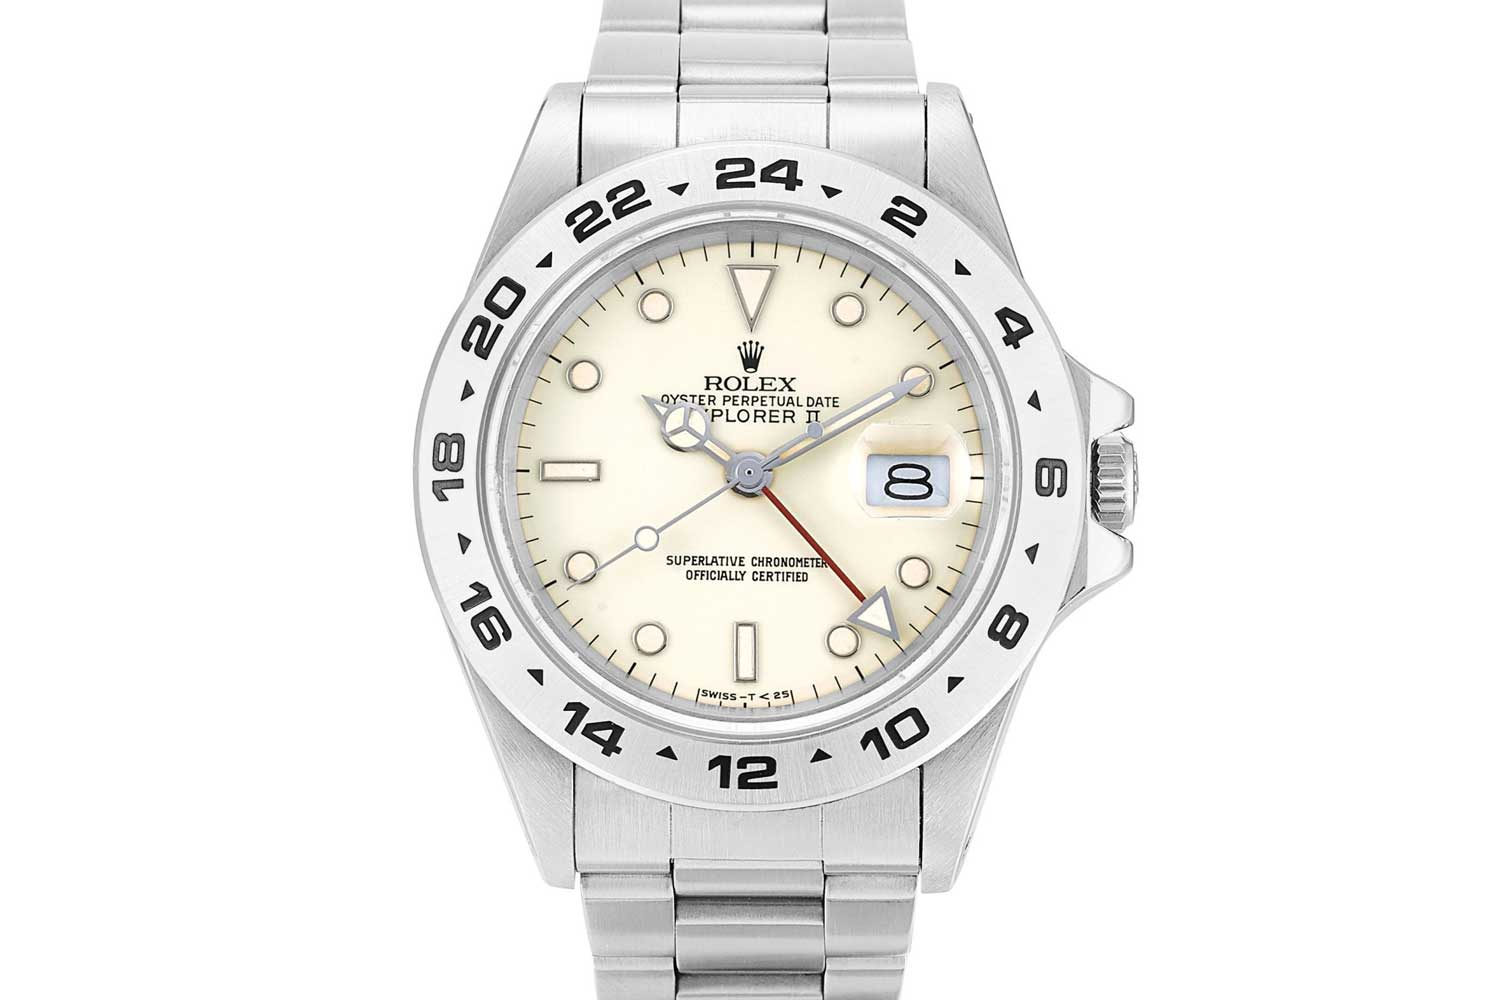 Rolex Explorer II reference 16550 - A stainless steel wristwatch with 24-hour indication and cream rail dial from 1987